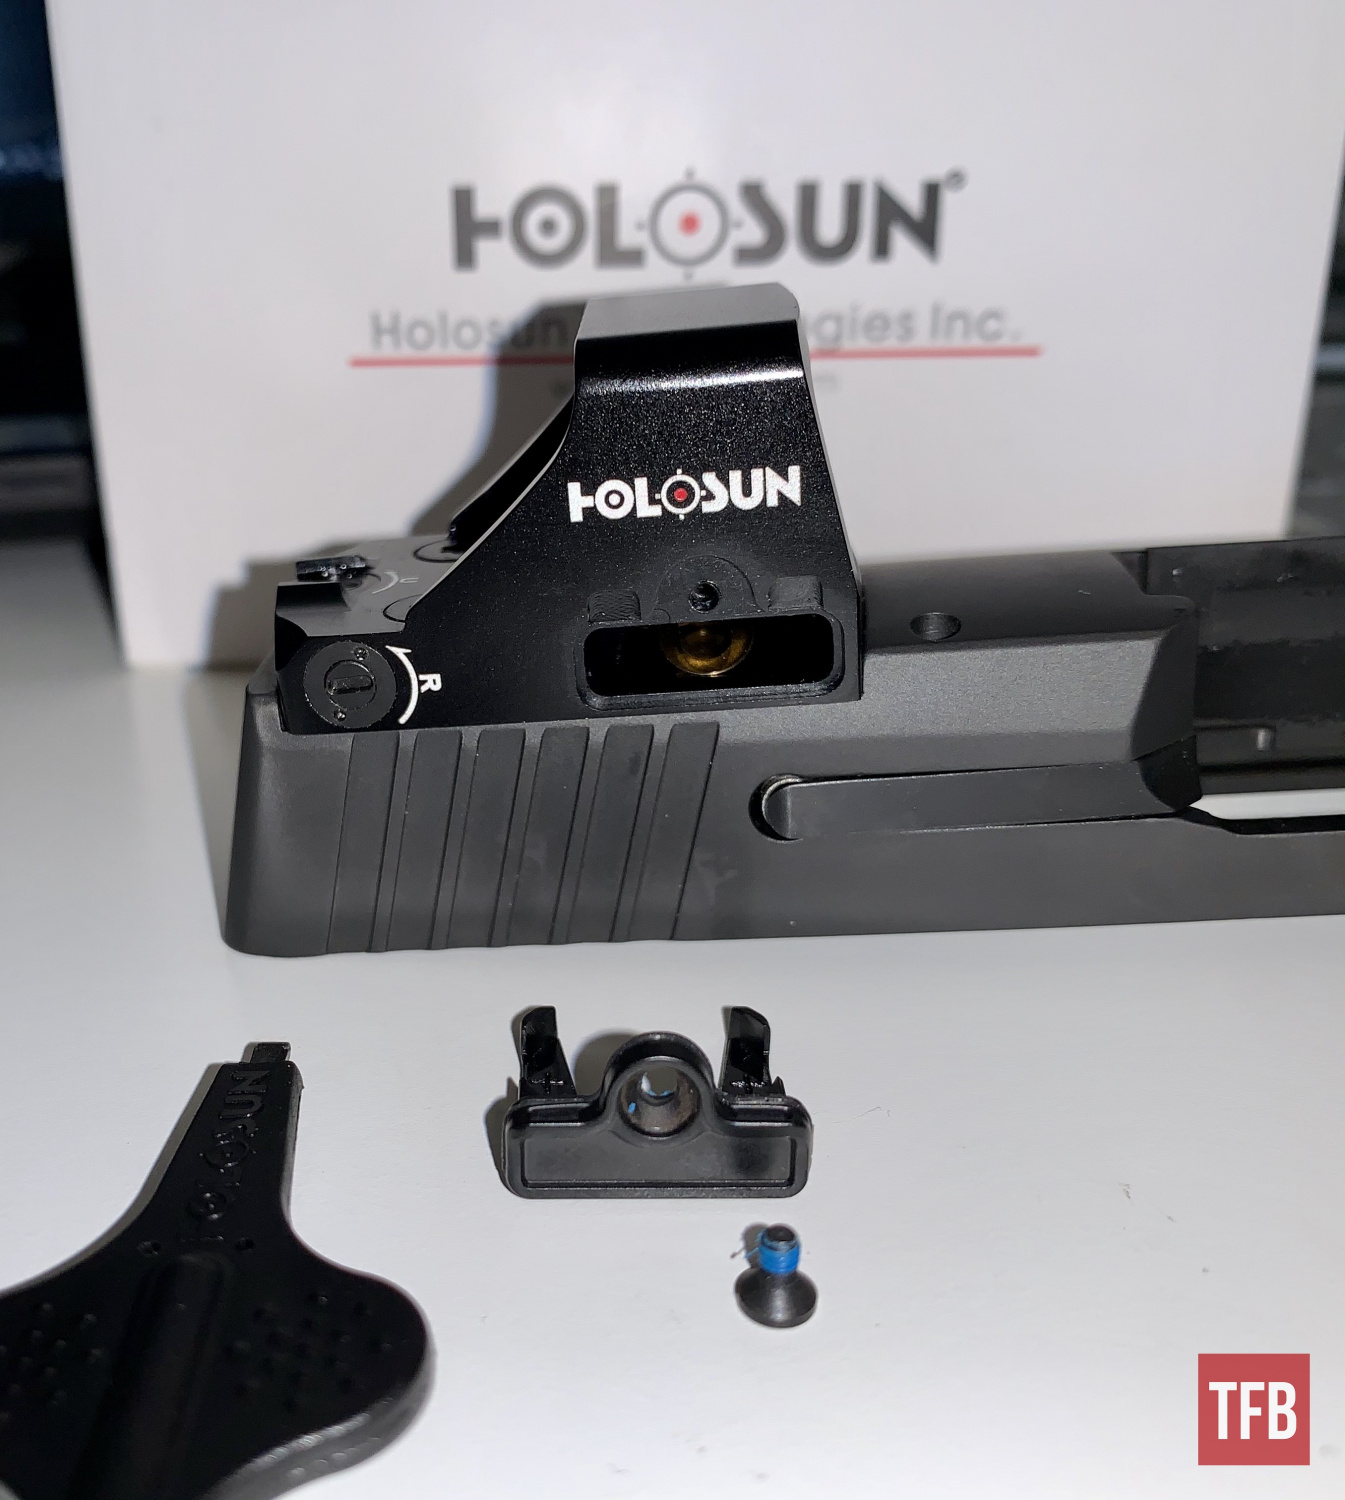 One common gripe about some other companies' red dots is that they require you to remove the optic to change the battery. Holosun eliminated that issue with this side-opening battery tray.